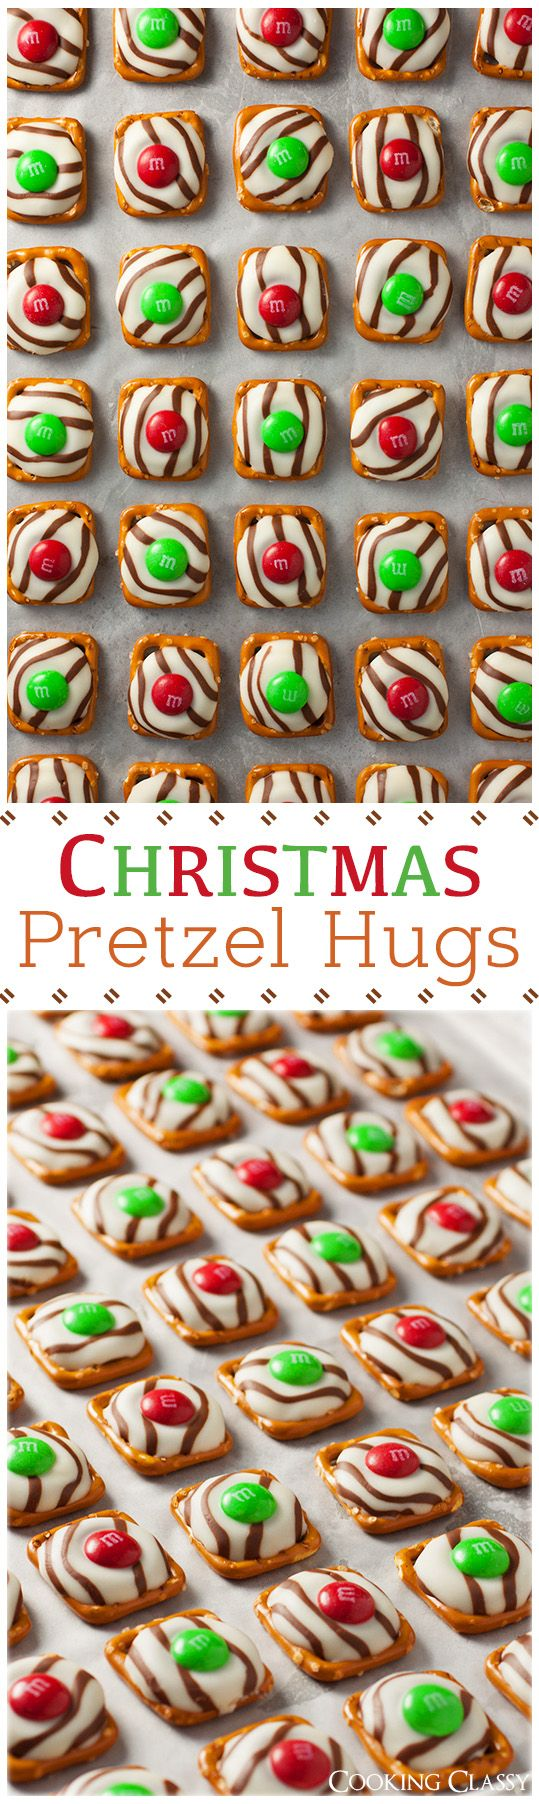 Christmas Pretzel Hugs - these things are amazingly easy to make and amazingly delicious!